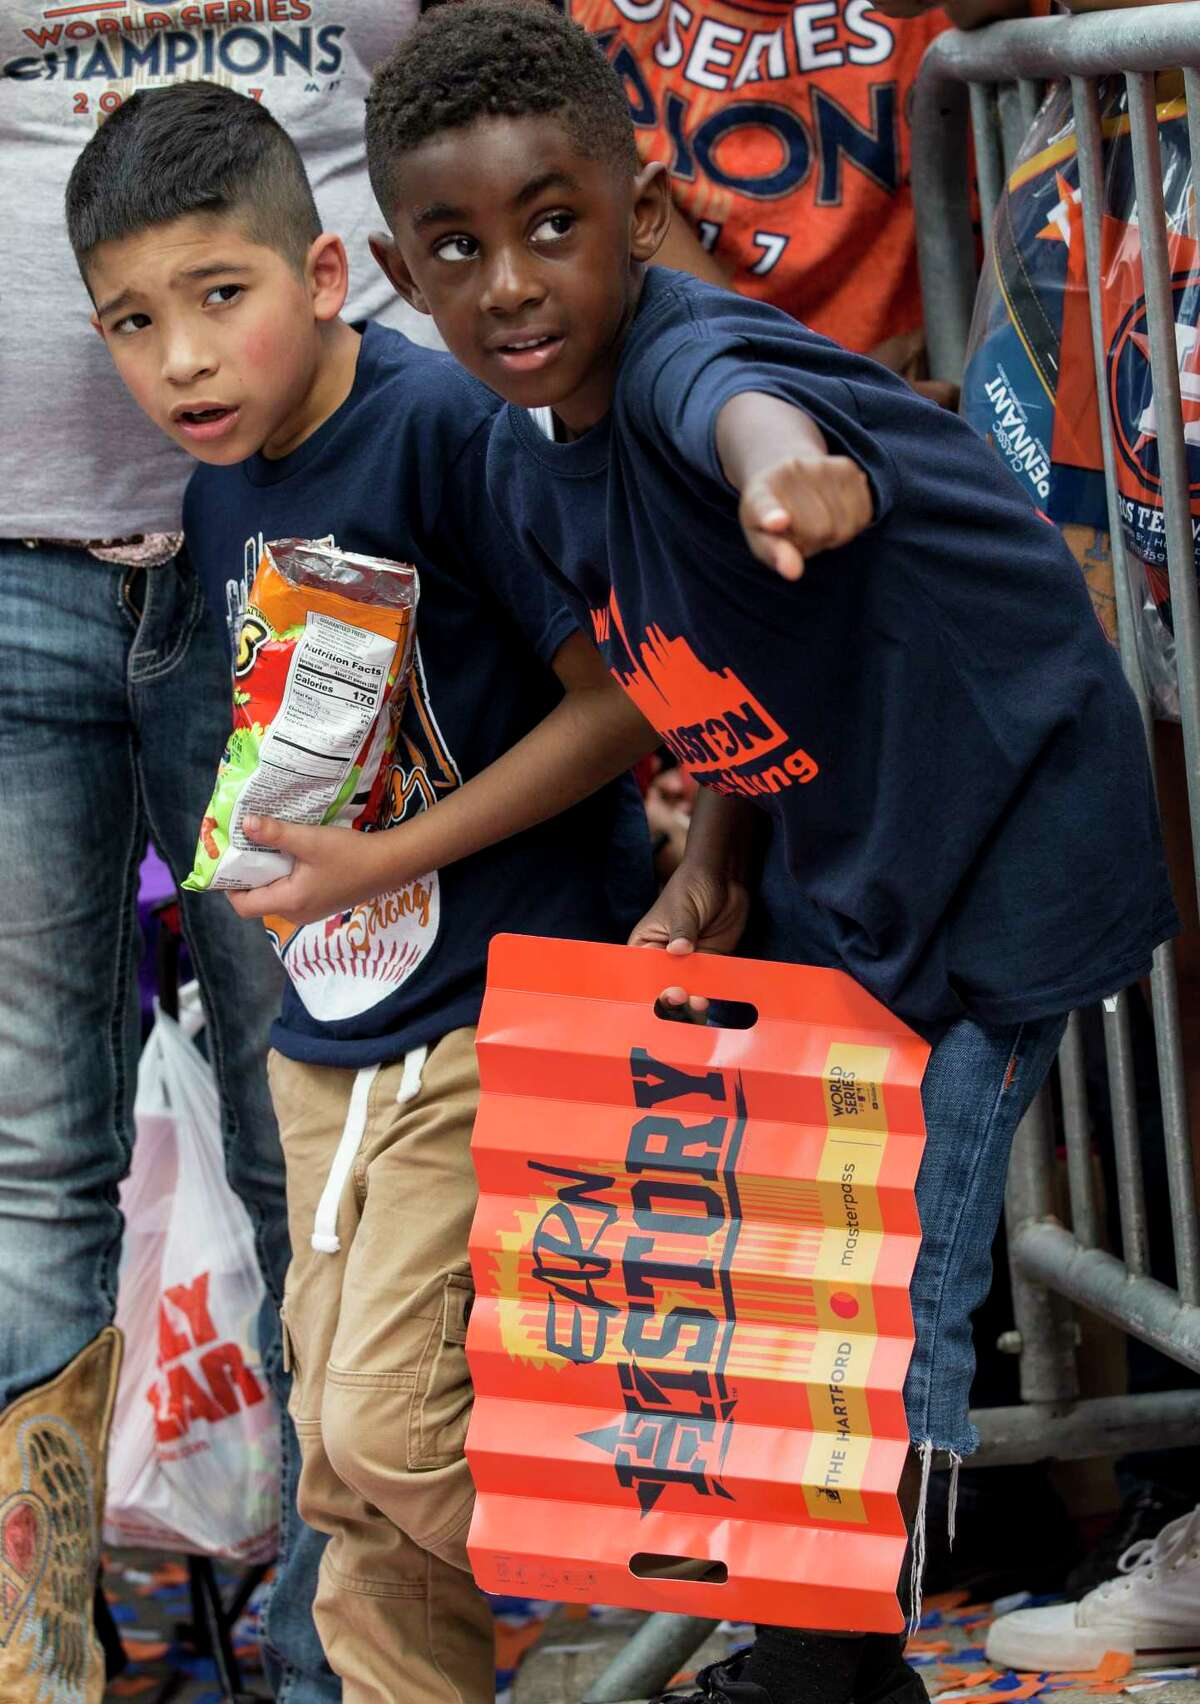 Houston Astros fans Mario Murillo, left, and John Stewart look up the street as they wait for the Astros World Series championship celebration parade on Friday, Nov. 3, 2017, in Houston. ( Brett Coomer / Houston Chronicle )